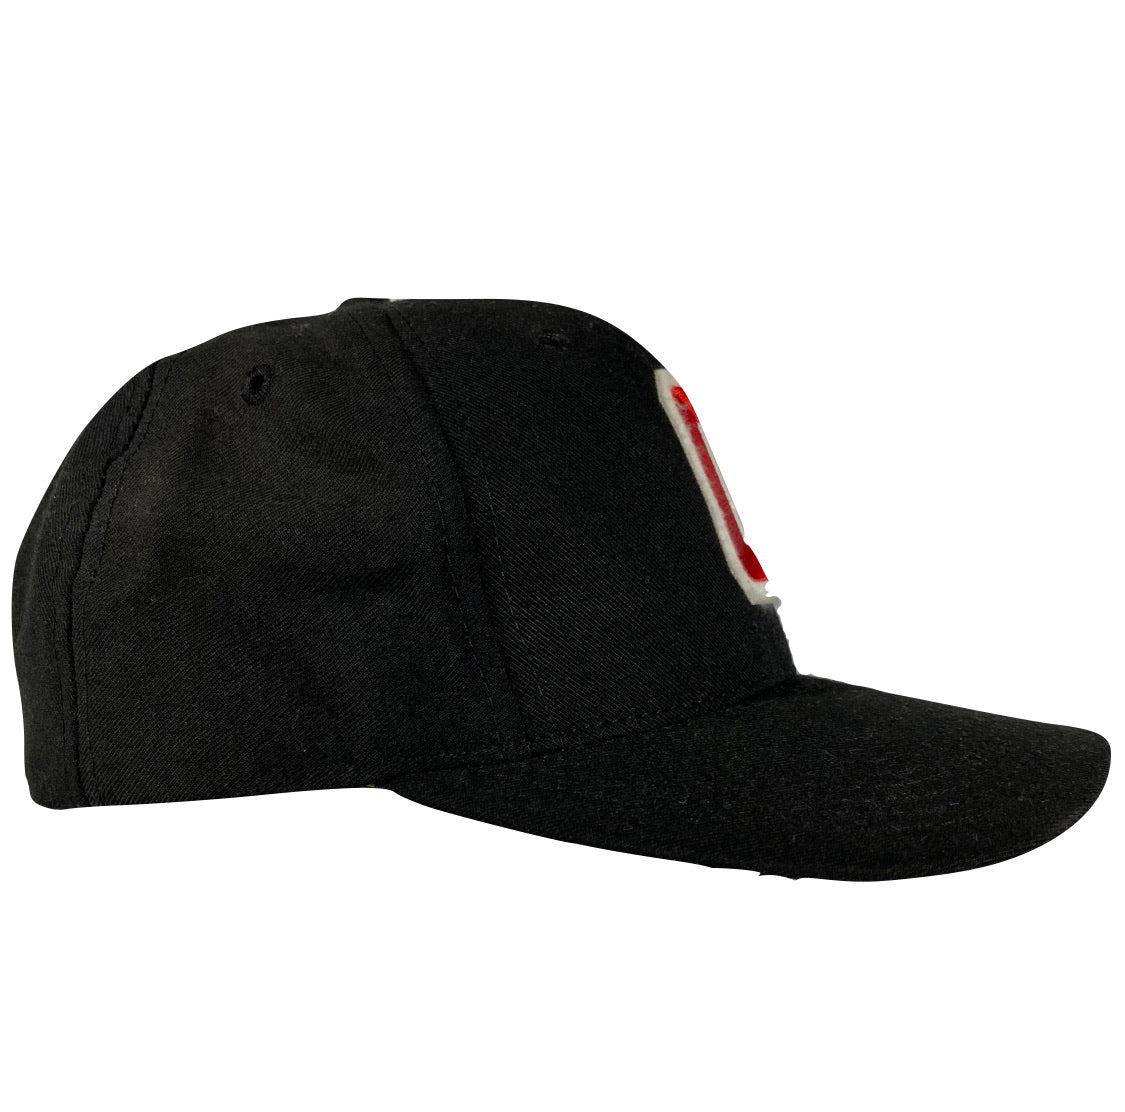 Ohio state fitted hat 7 3/8